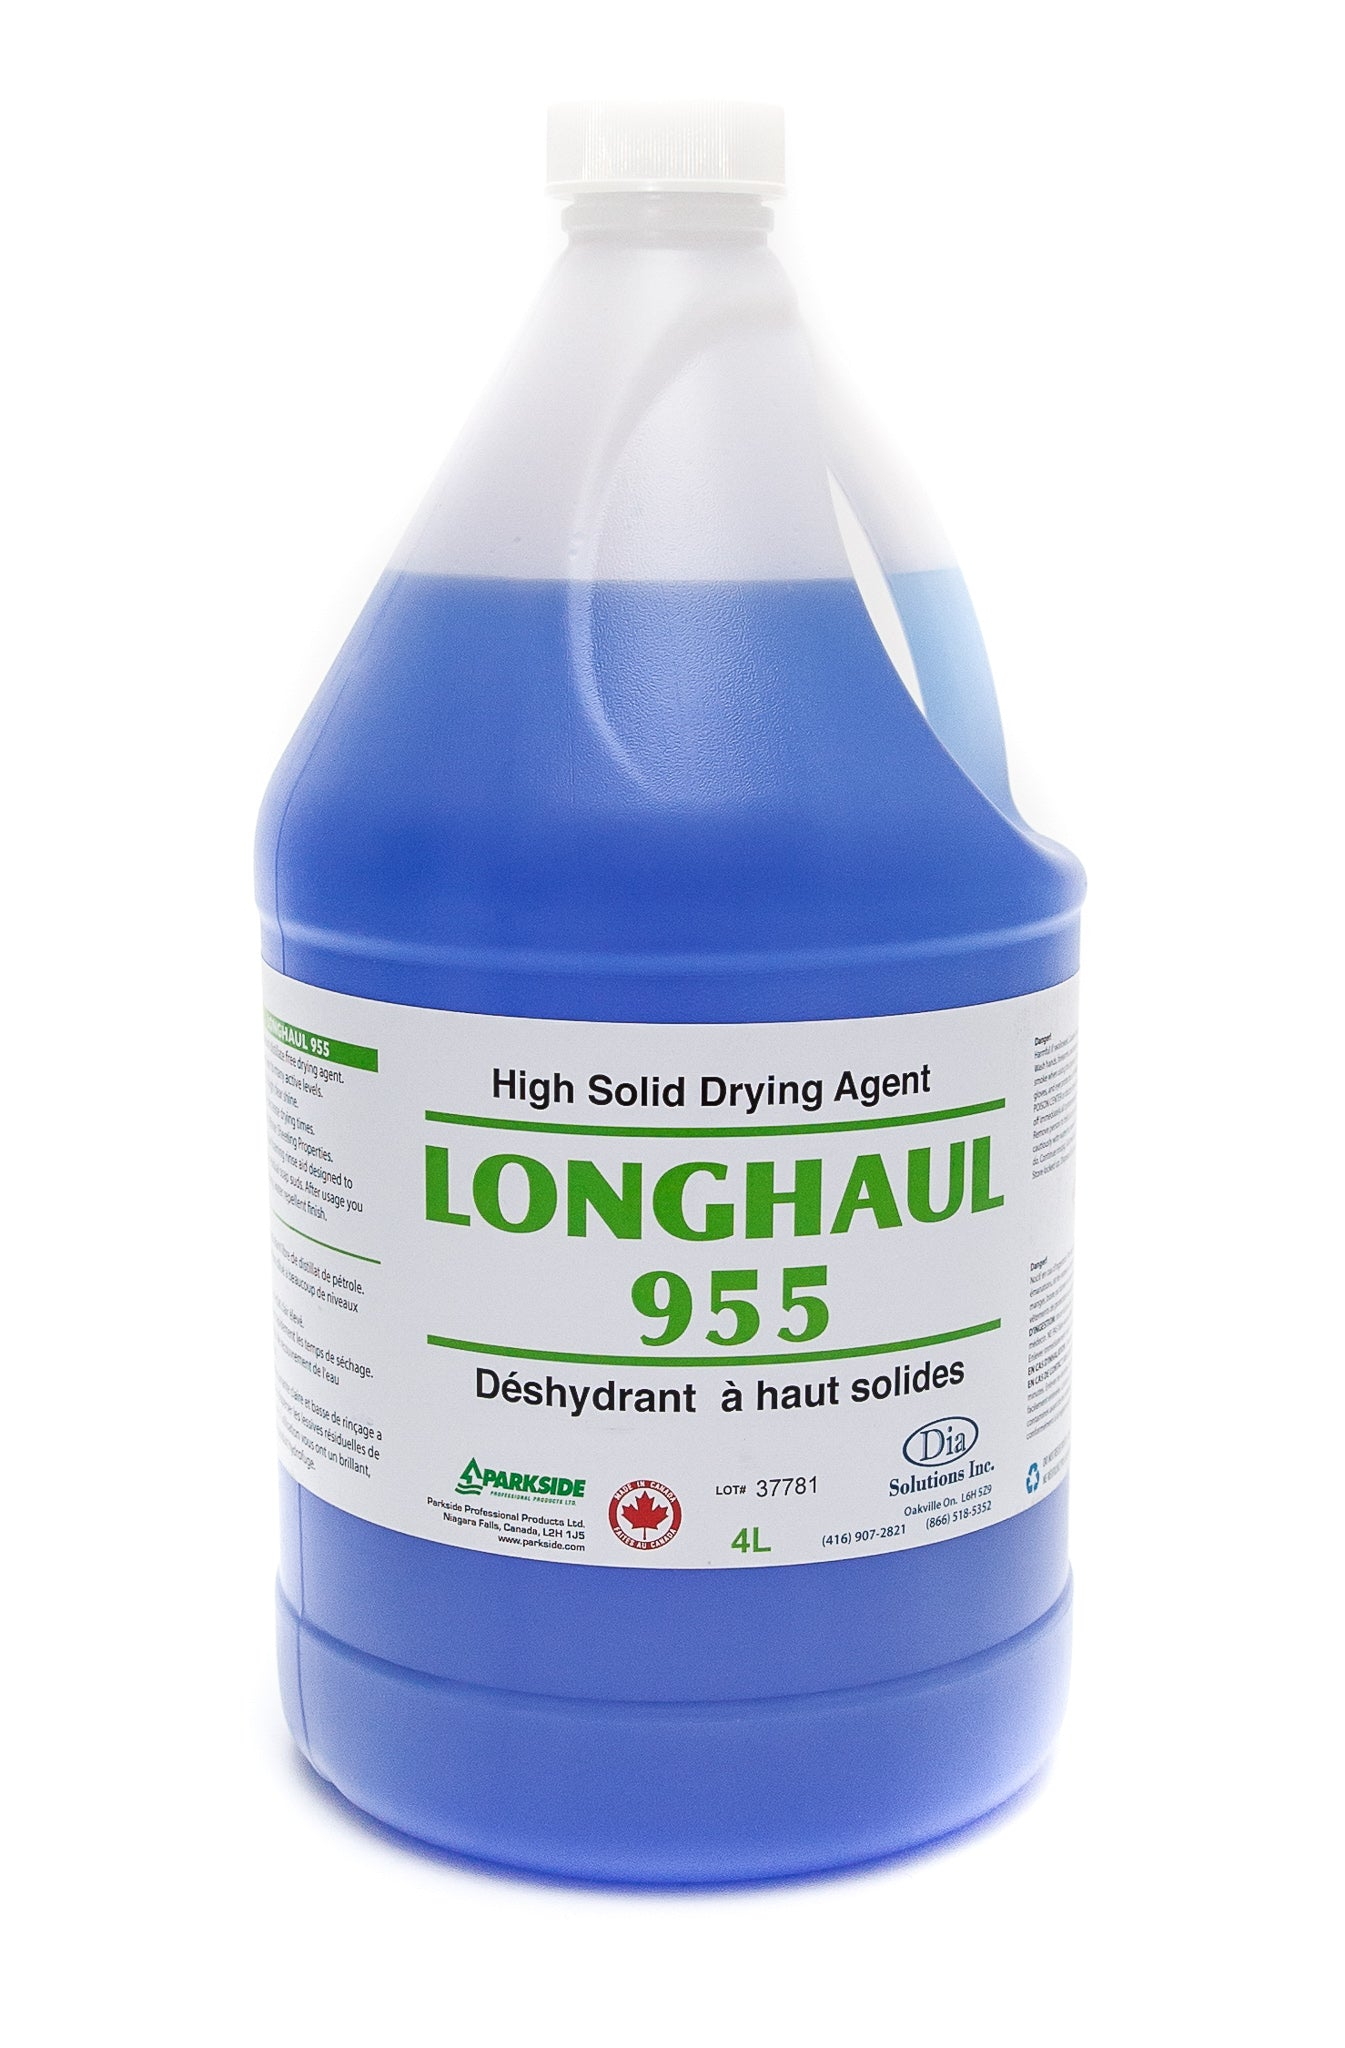 Longhaul 955 - High Solid Drying Agent